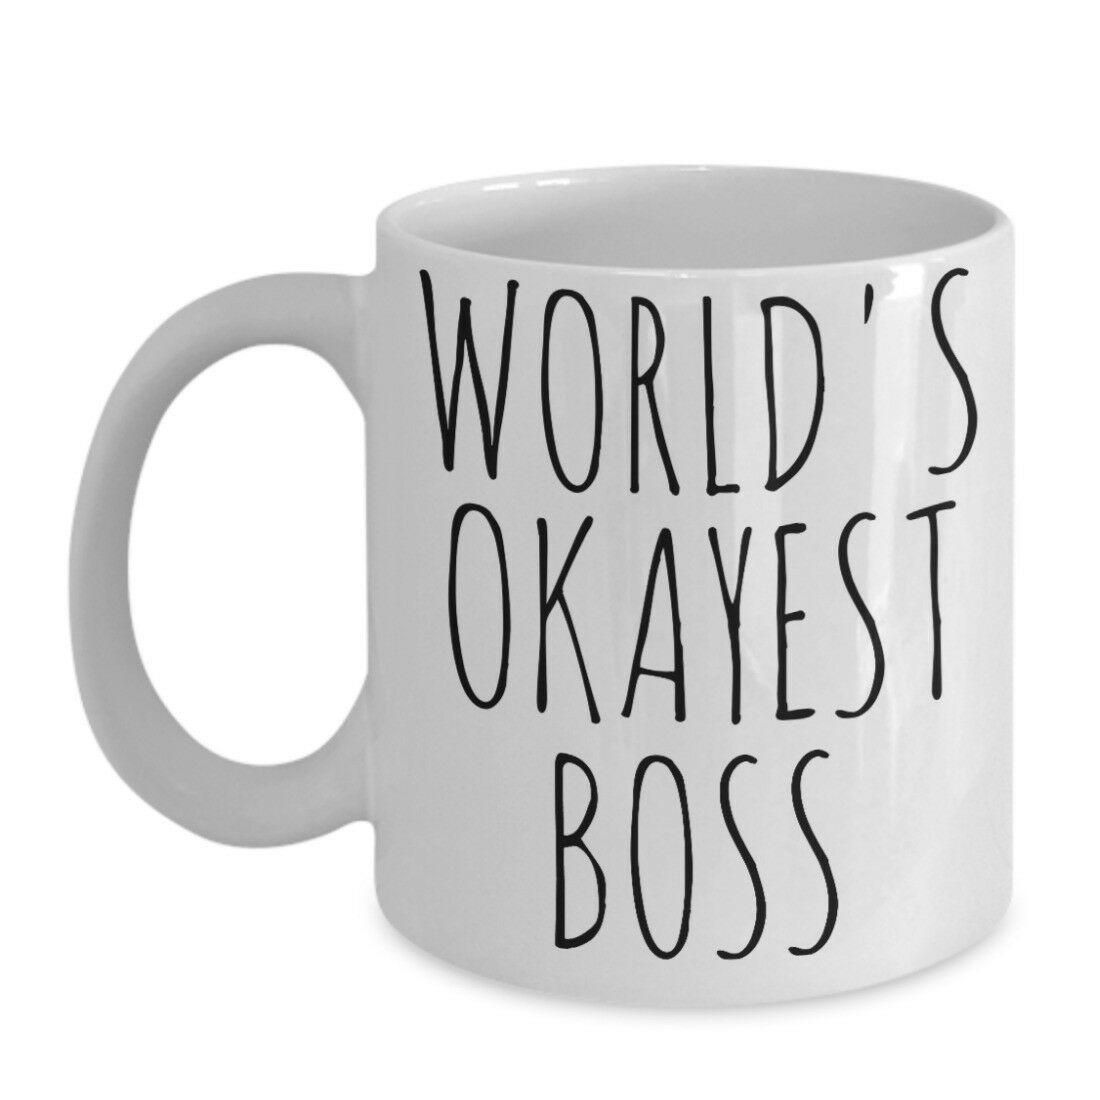 Primary image for Worlds Okayest Boss Mug Work Birthday Gag Gift Valentines Ceramic Coffee Cup